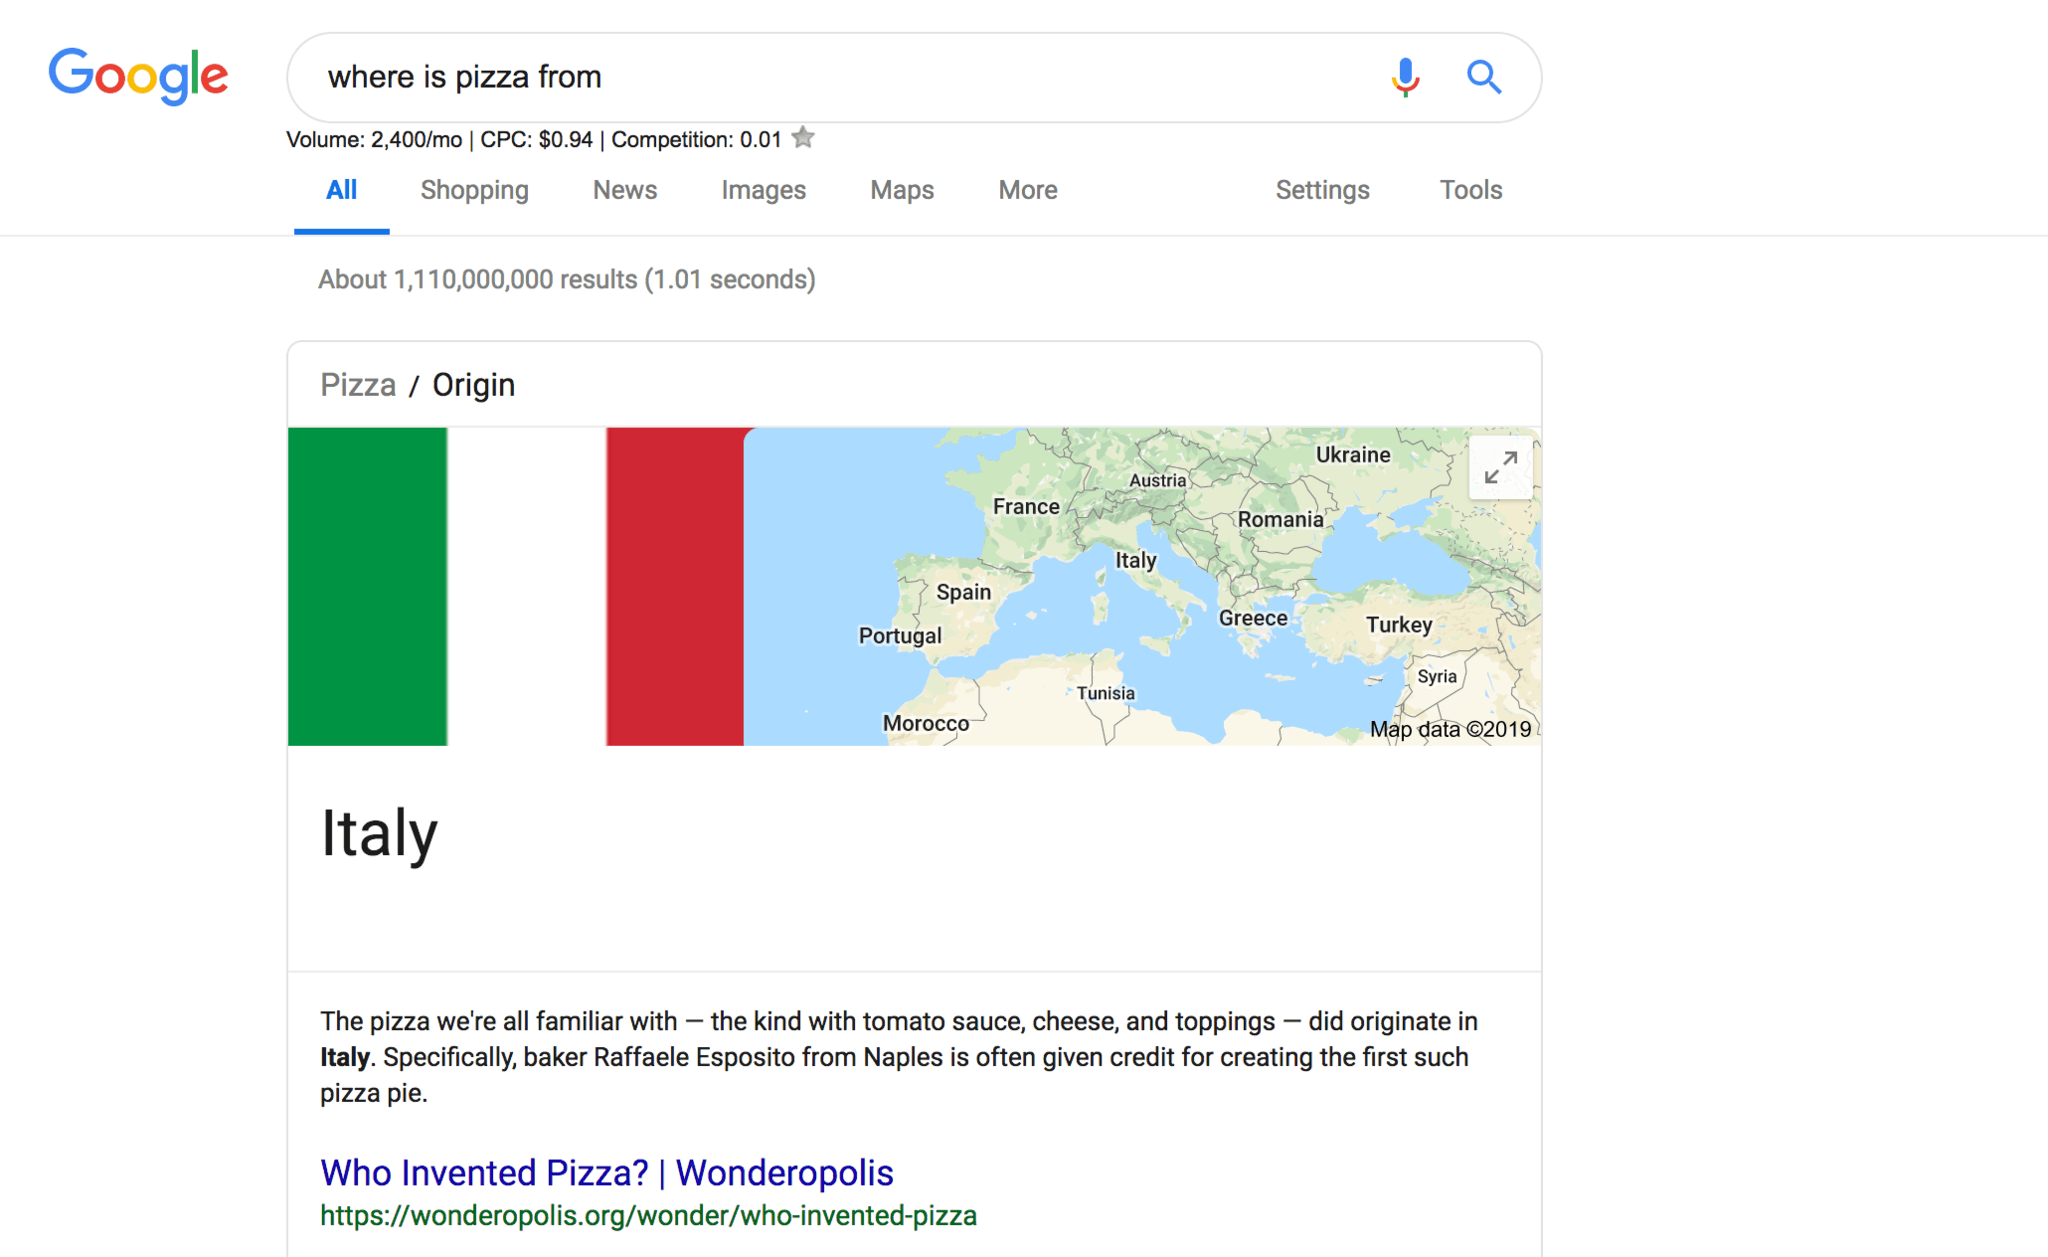 paragraph featured snippet showcasing where pizza is from